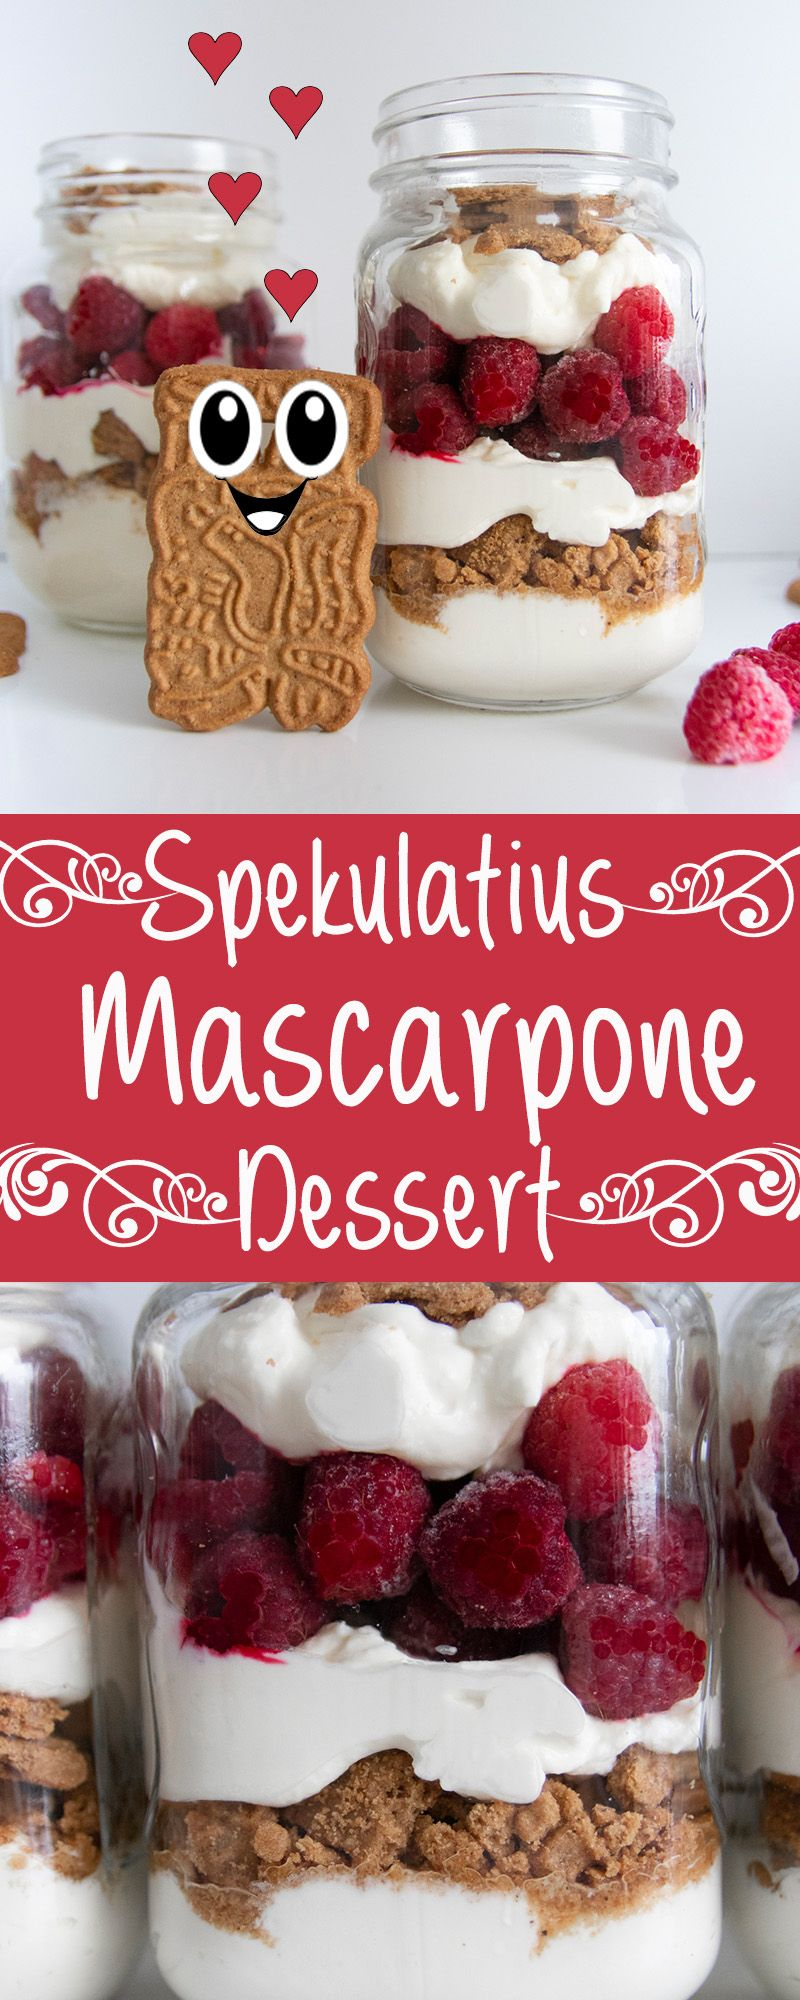 Photo of WOW! 5 minutes of speculoos mascarpone dessert